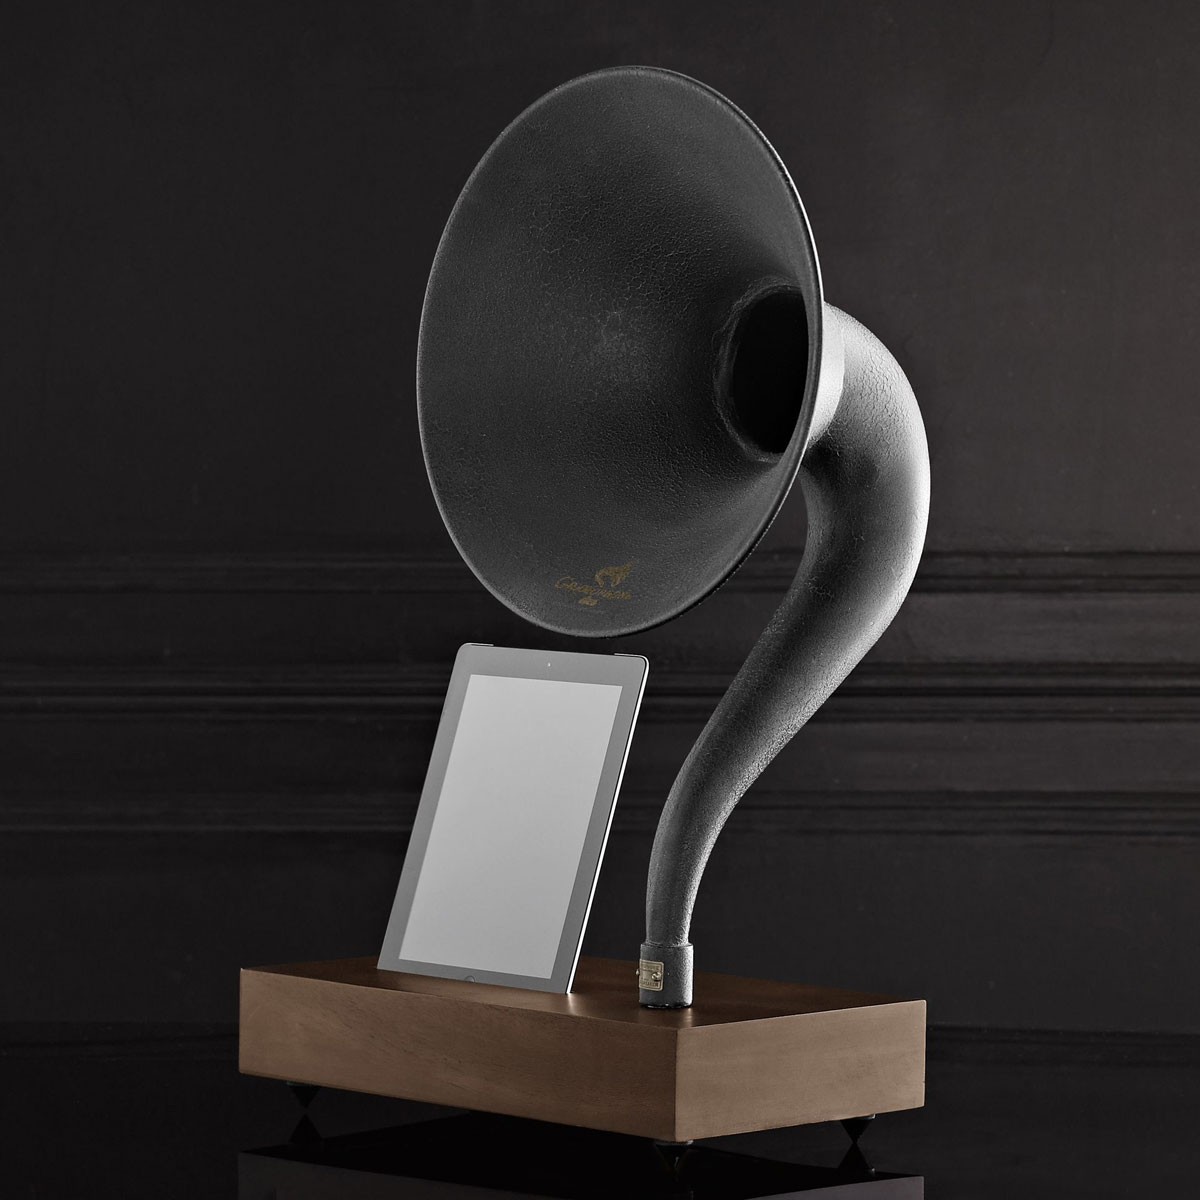 Iphone Ipad Gramophone Amplifying Speaker Horn The